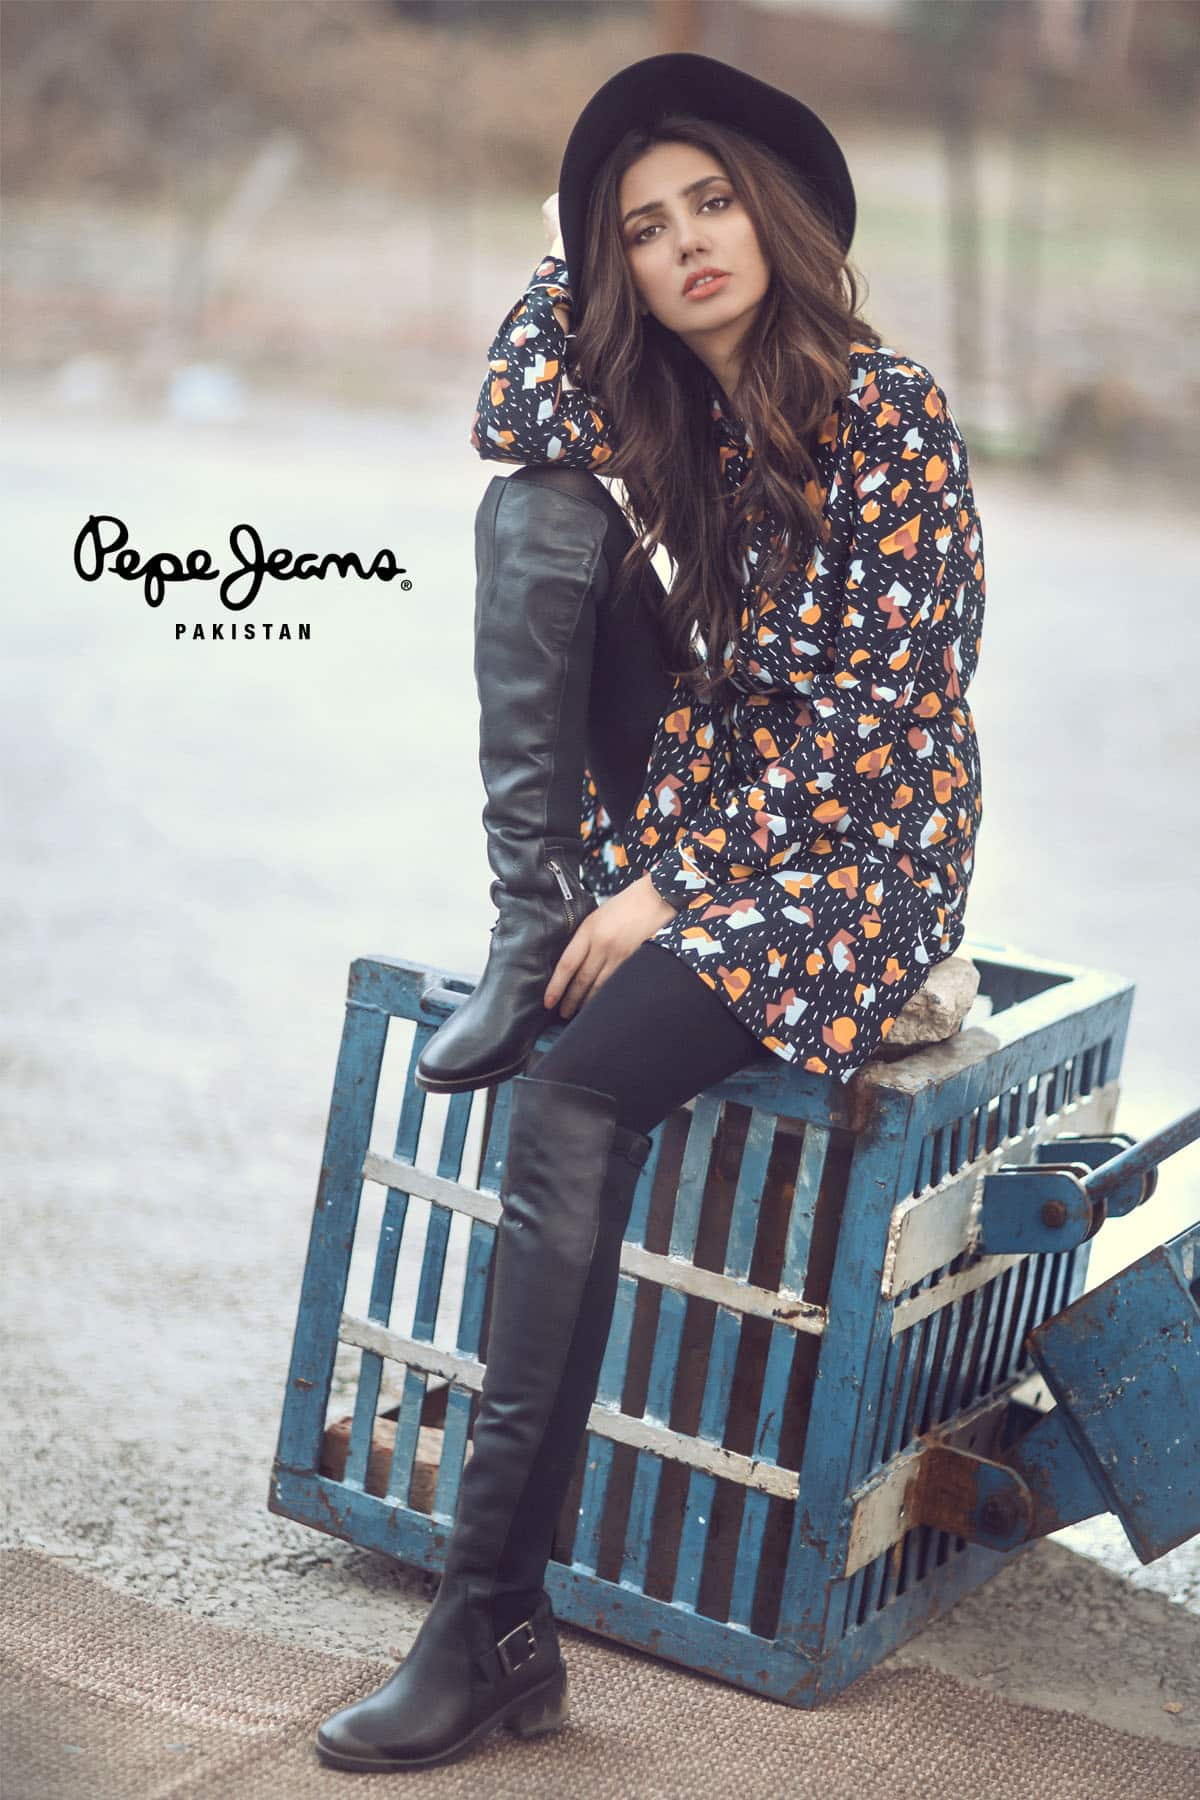 Mahira Khan for Pepe Jeans Pakistan Winter 2015 Campaign – #MKLovesPepe (5)